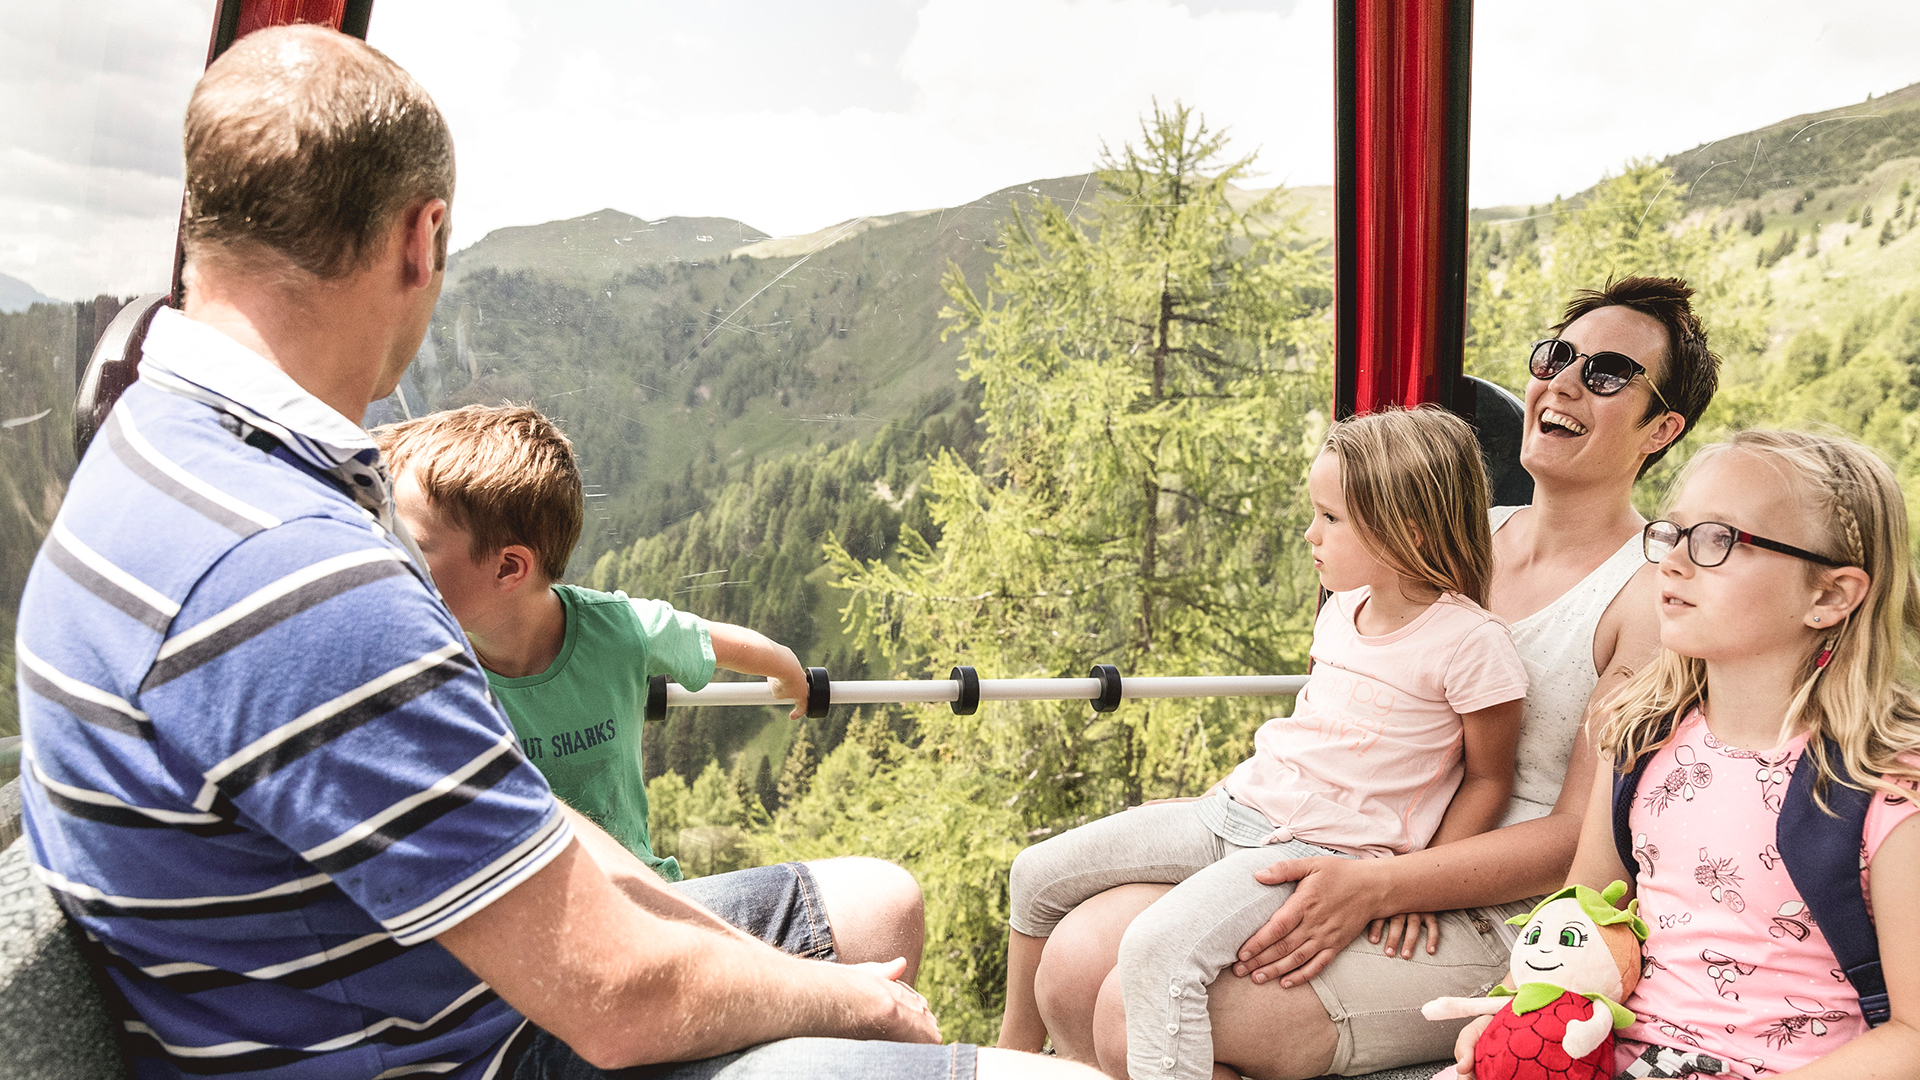 Family on viewing platform in the mountains